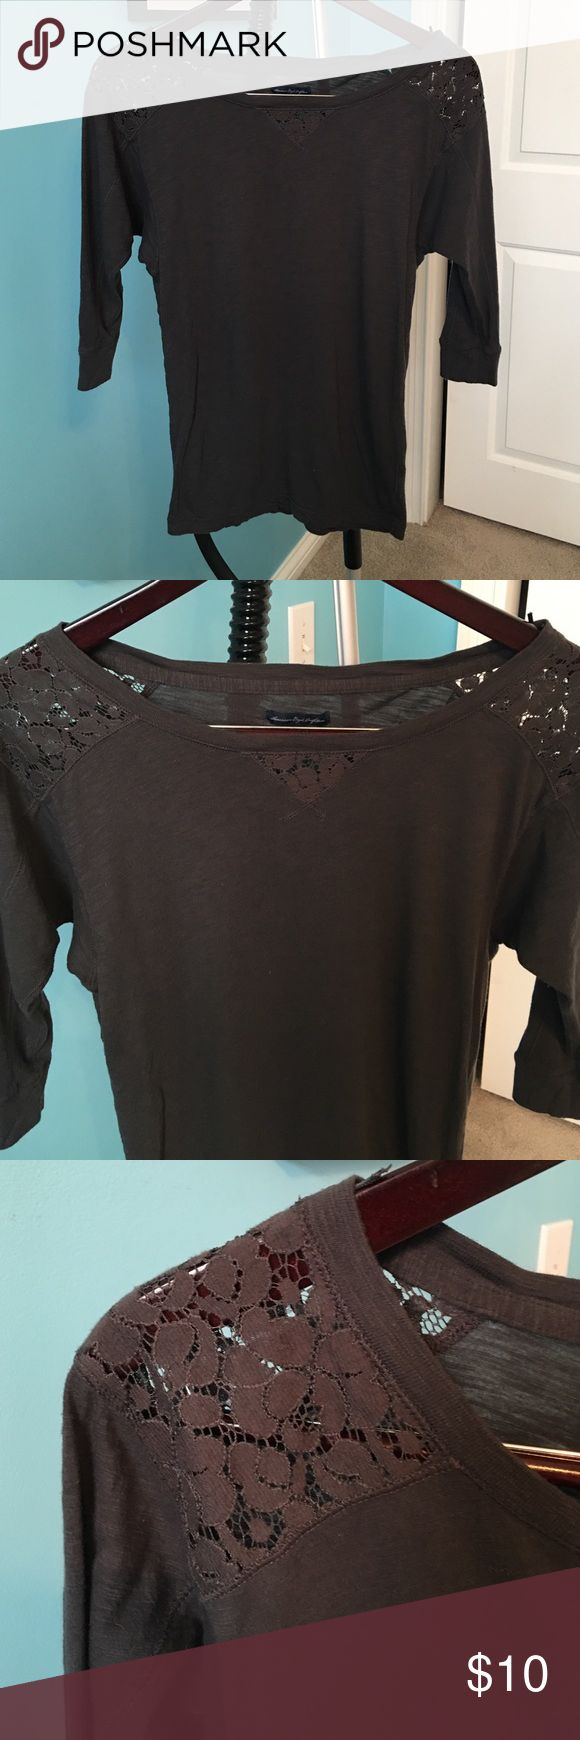 American Eagle 3/4 sleeve t-shirt with lace detail Very cute and super soft 3/4 sleeve long t-shirt with lace detail at the shoulder and neck American Eagle Outfitters Tops Tees - Long Sleeve